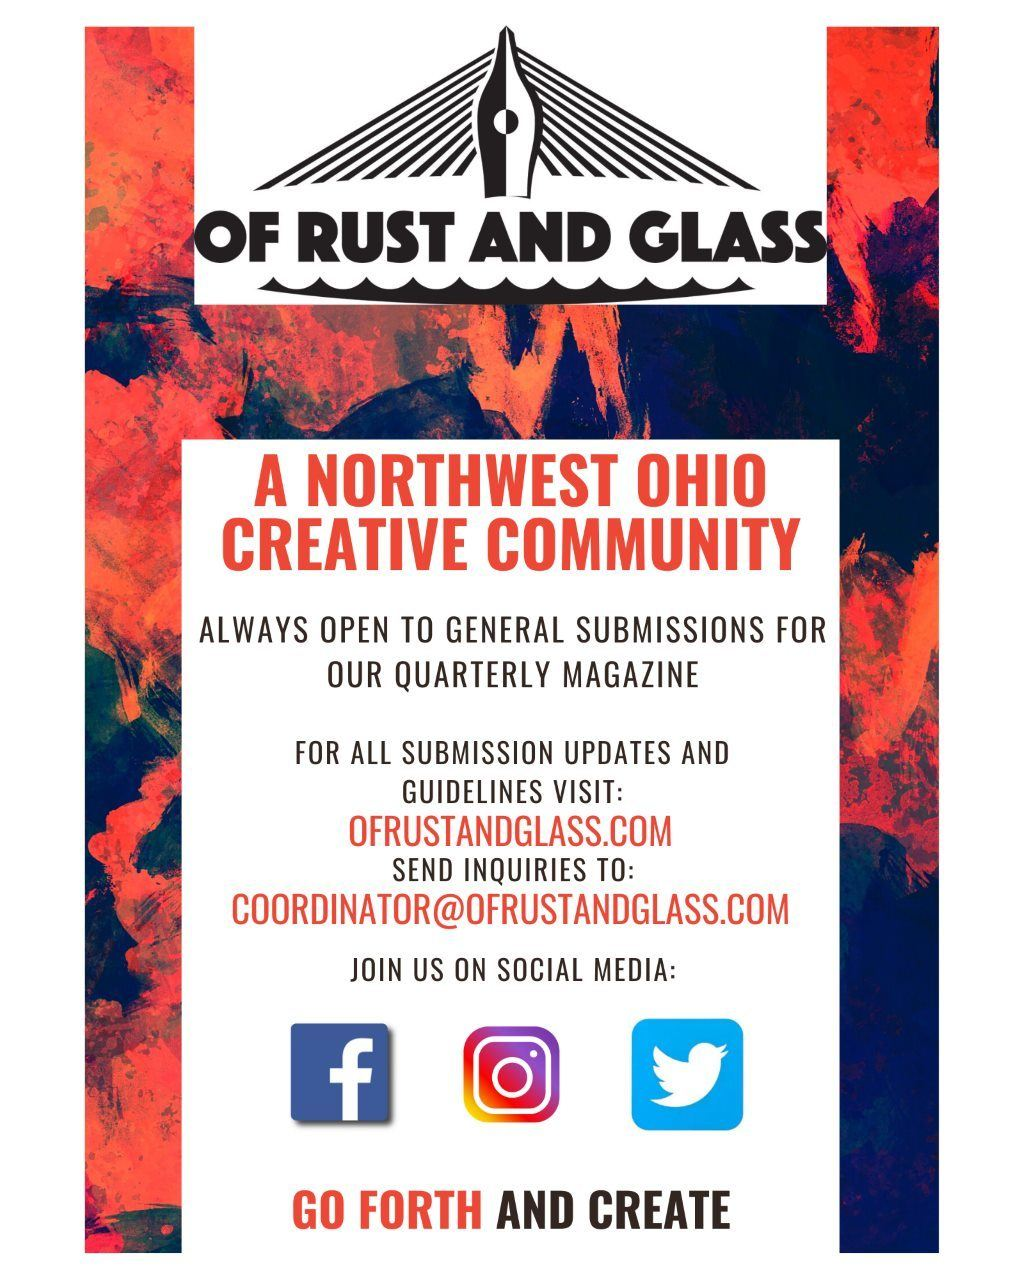 Of rust and glass flyer